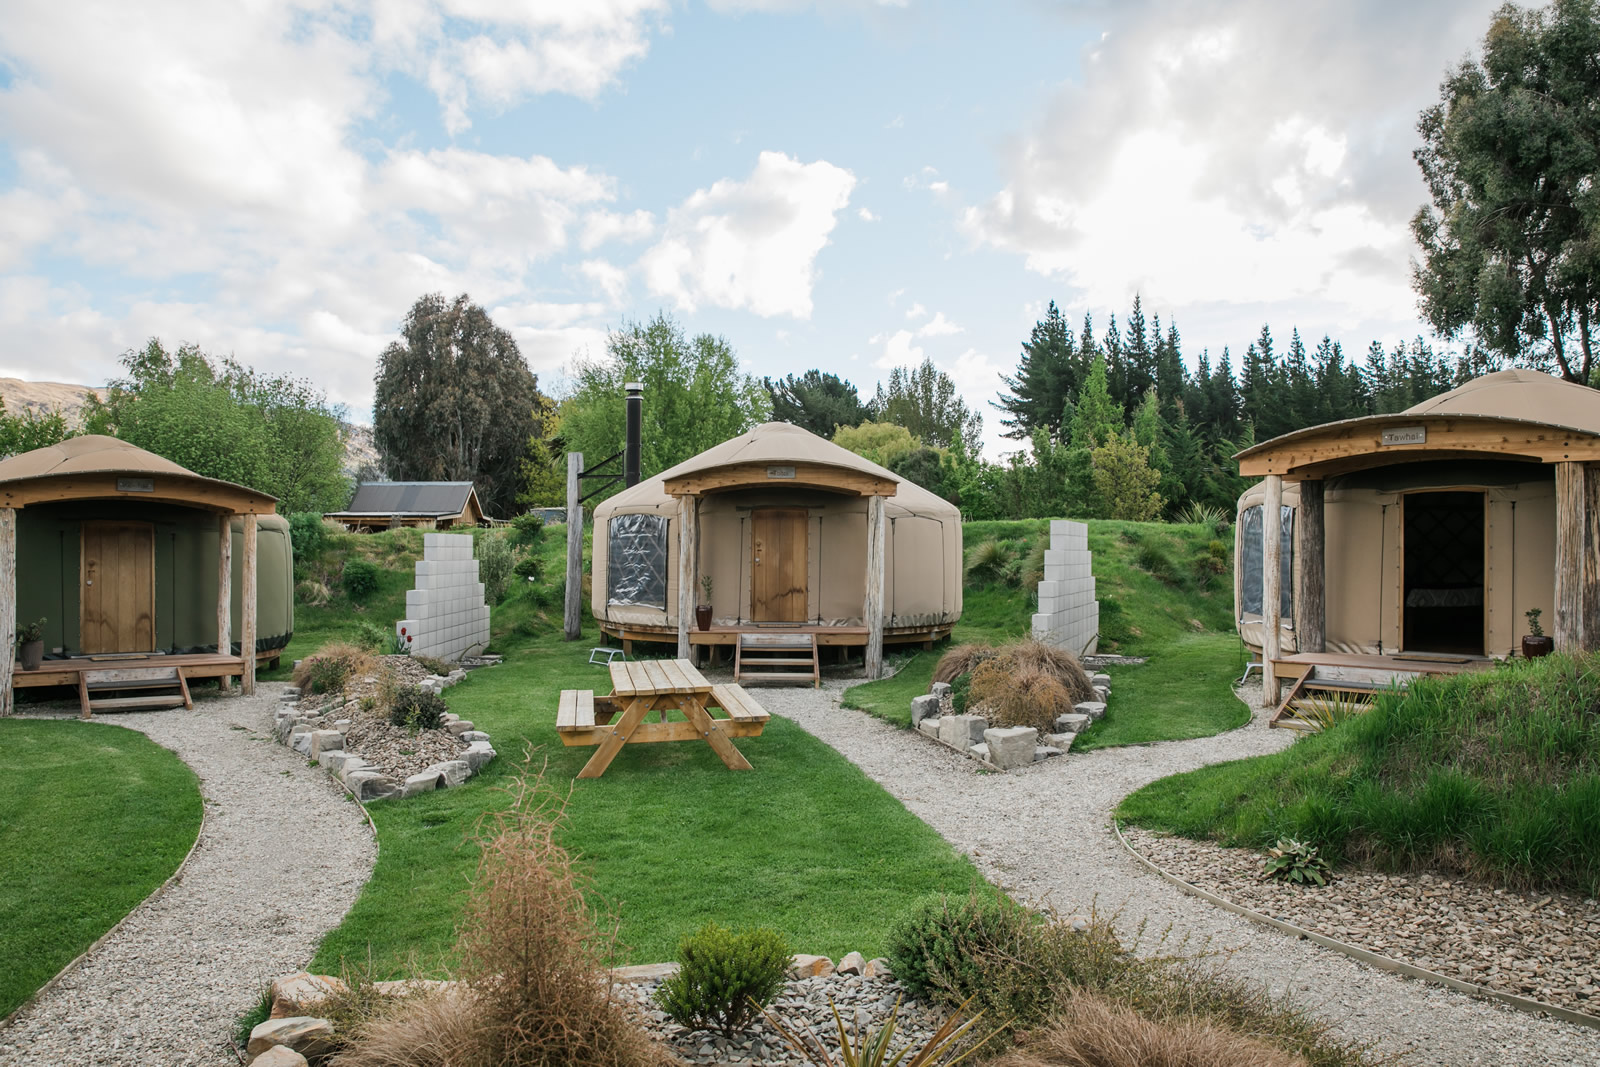 Outside of yurts at Oasis Yurt Lodge, Wanaka New Zealand